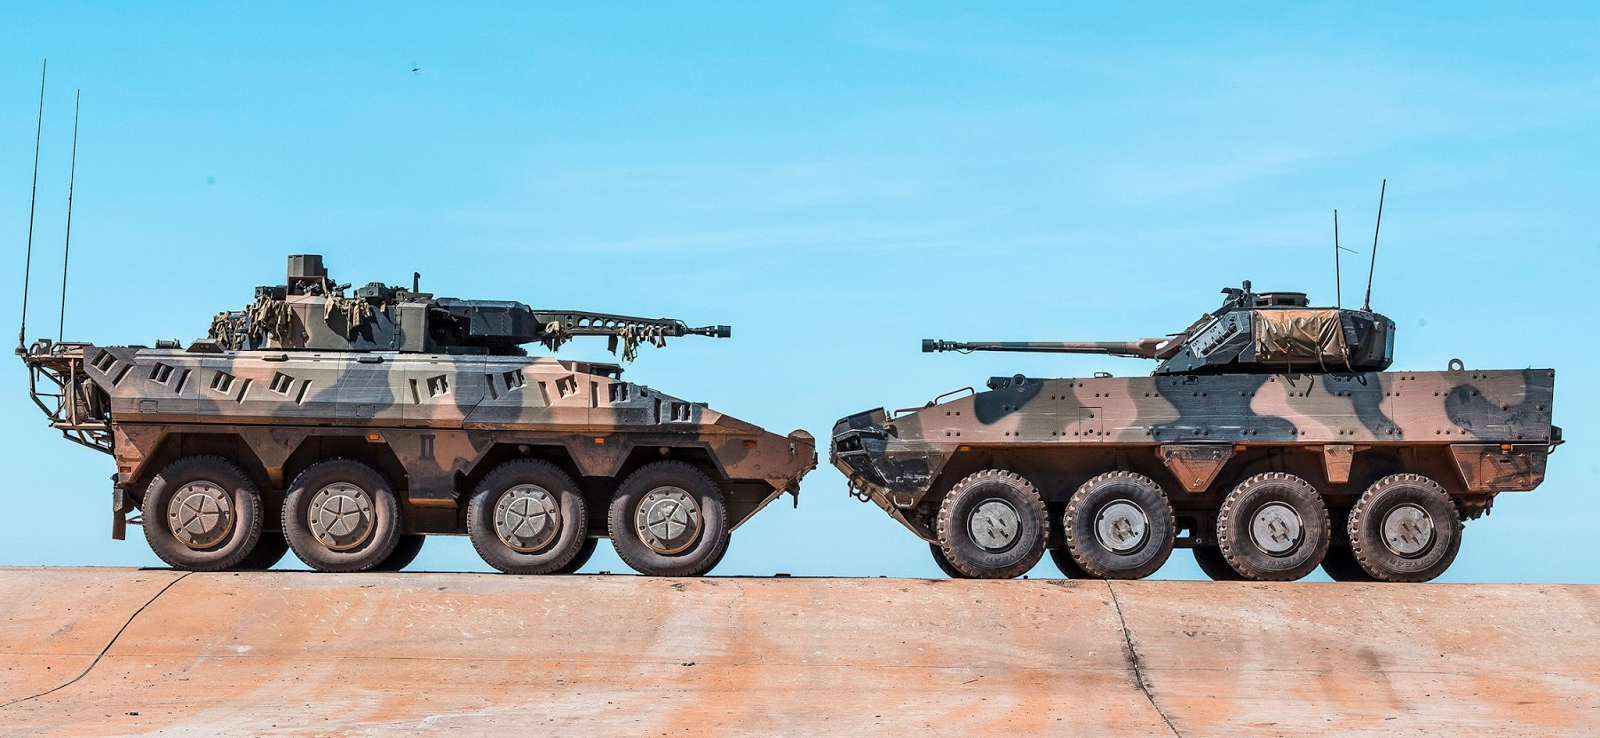 Below The Turret Ring: The market for wheeled 8x8 is not